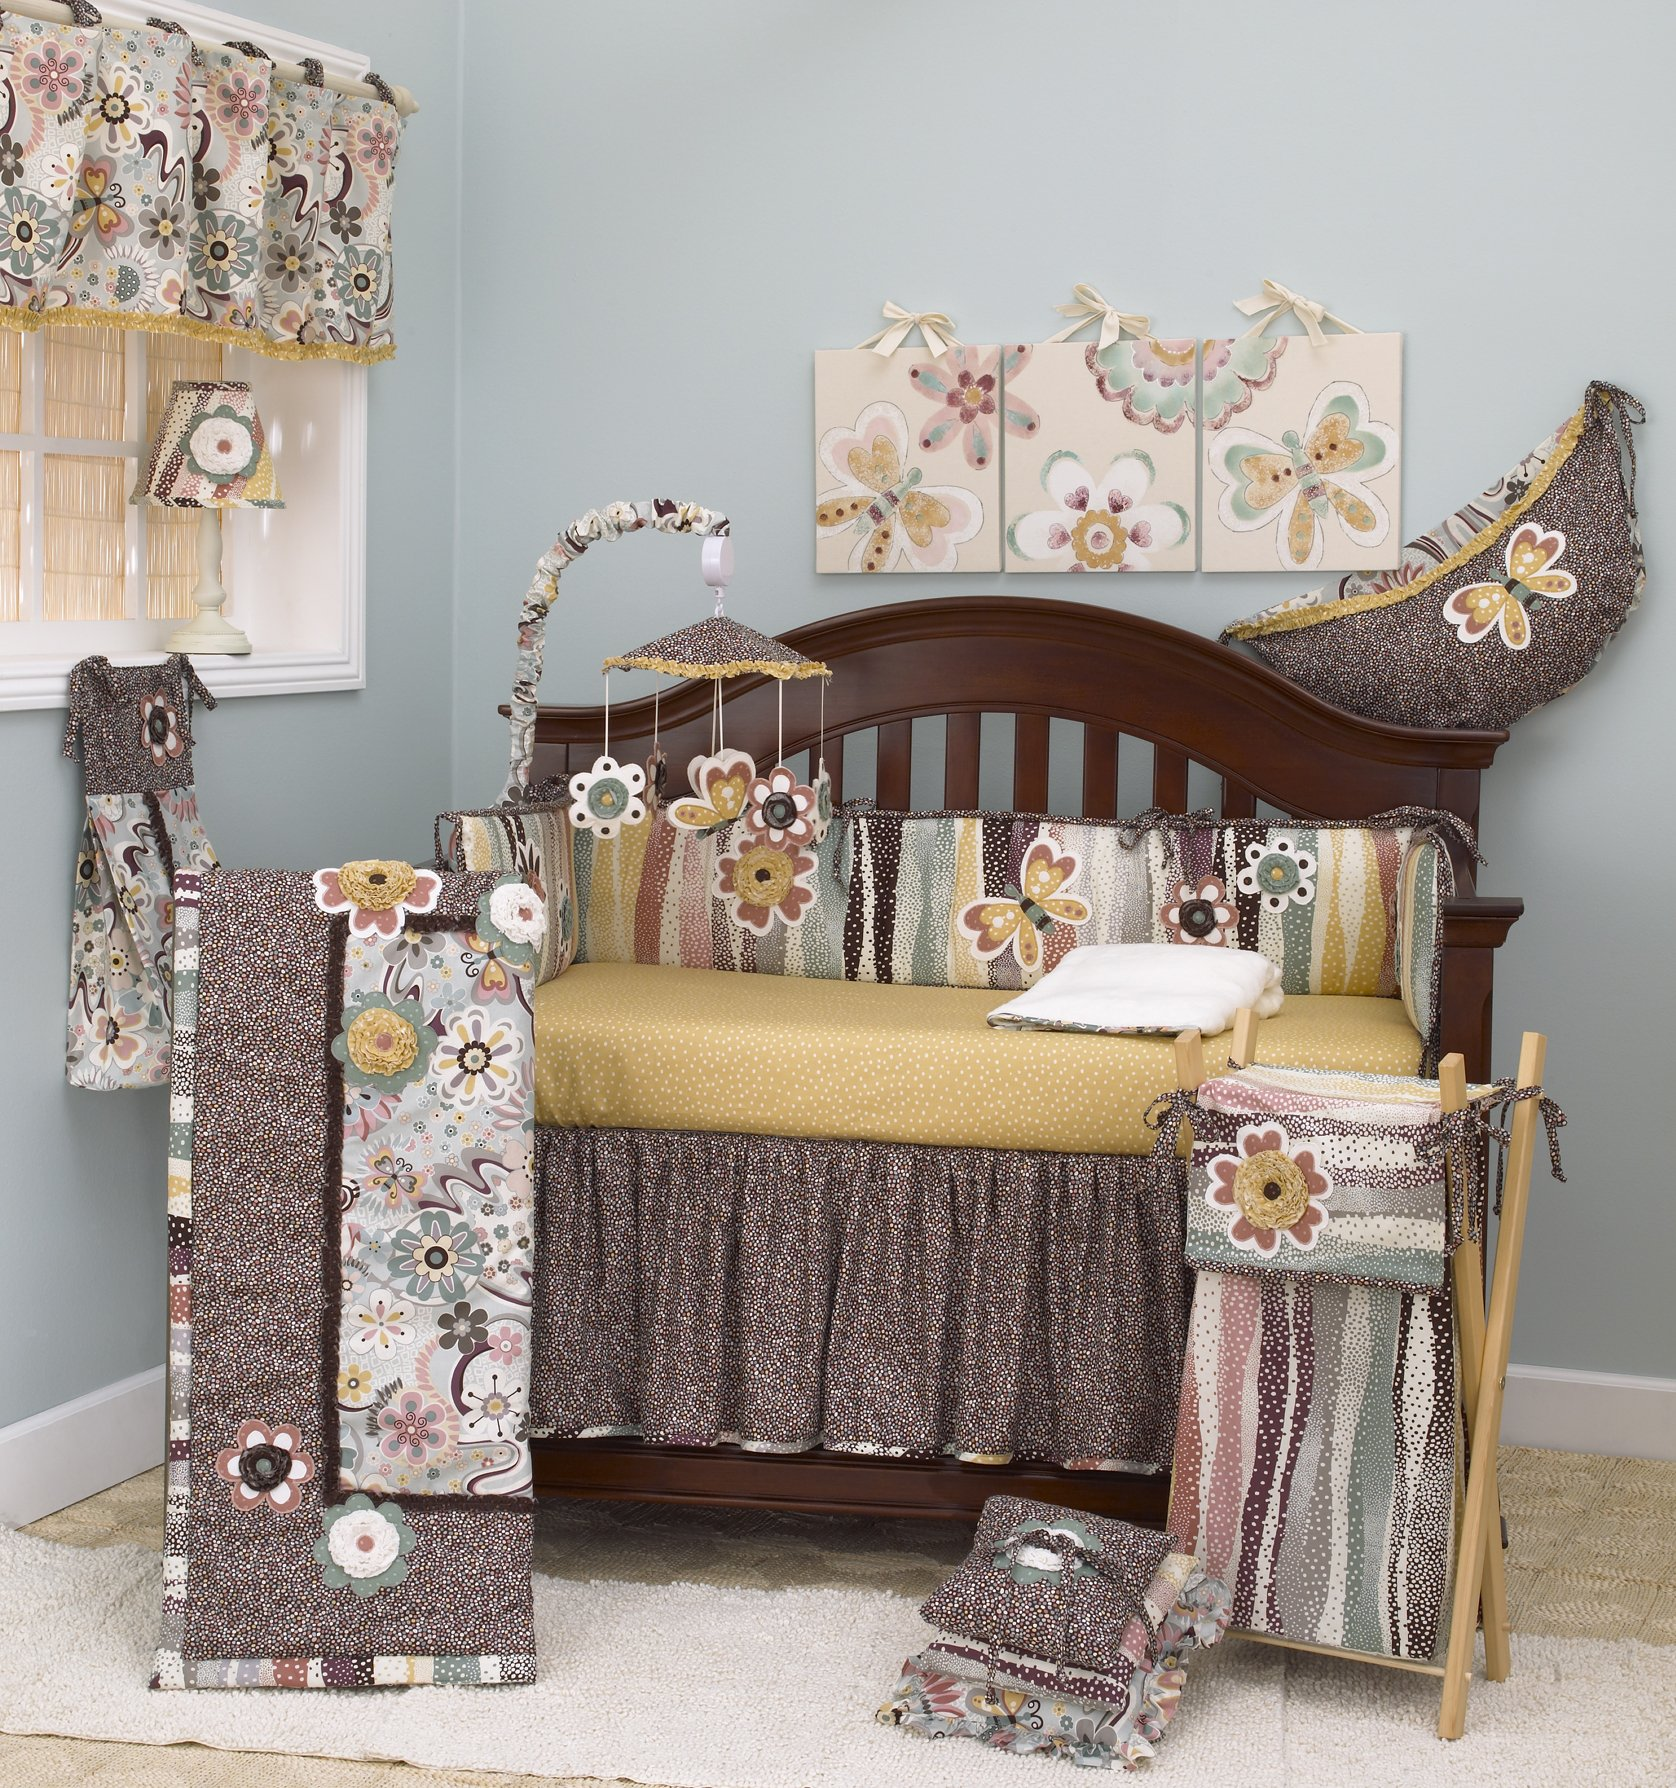 Cotton Tale Designs Penny Lane Crib Bedding Set, 8 Piece